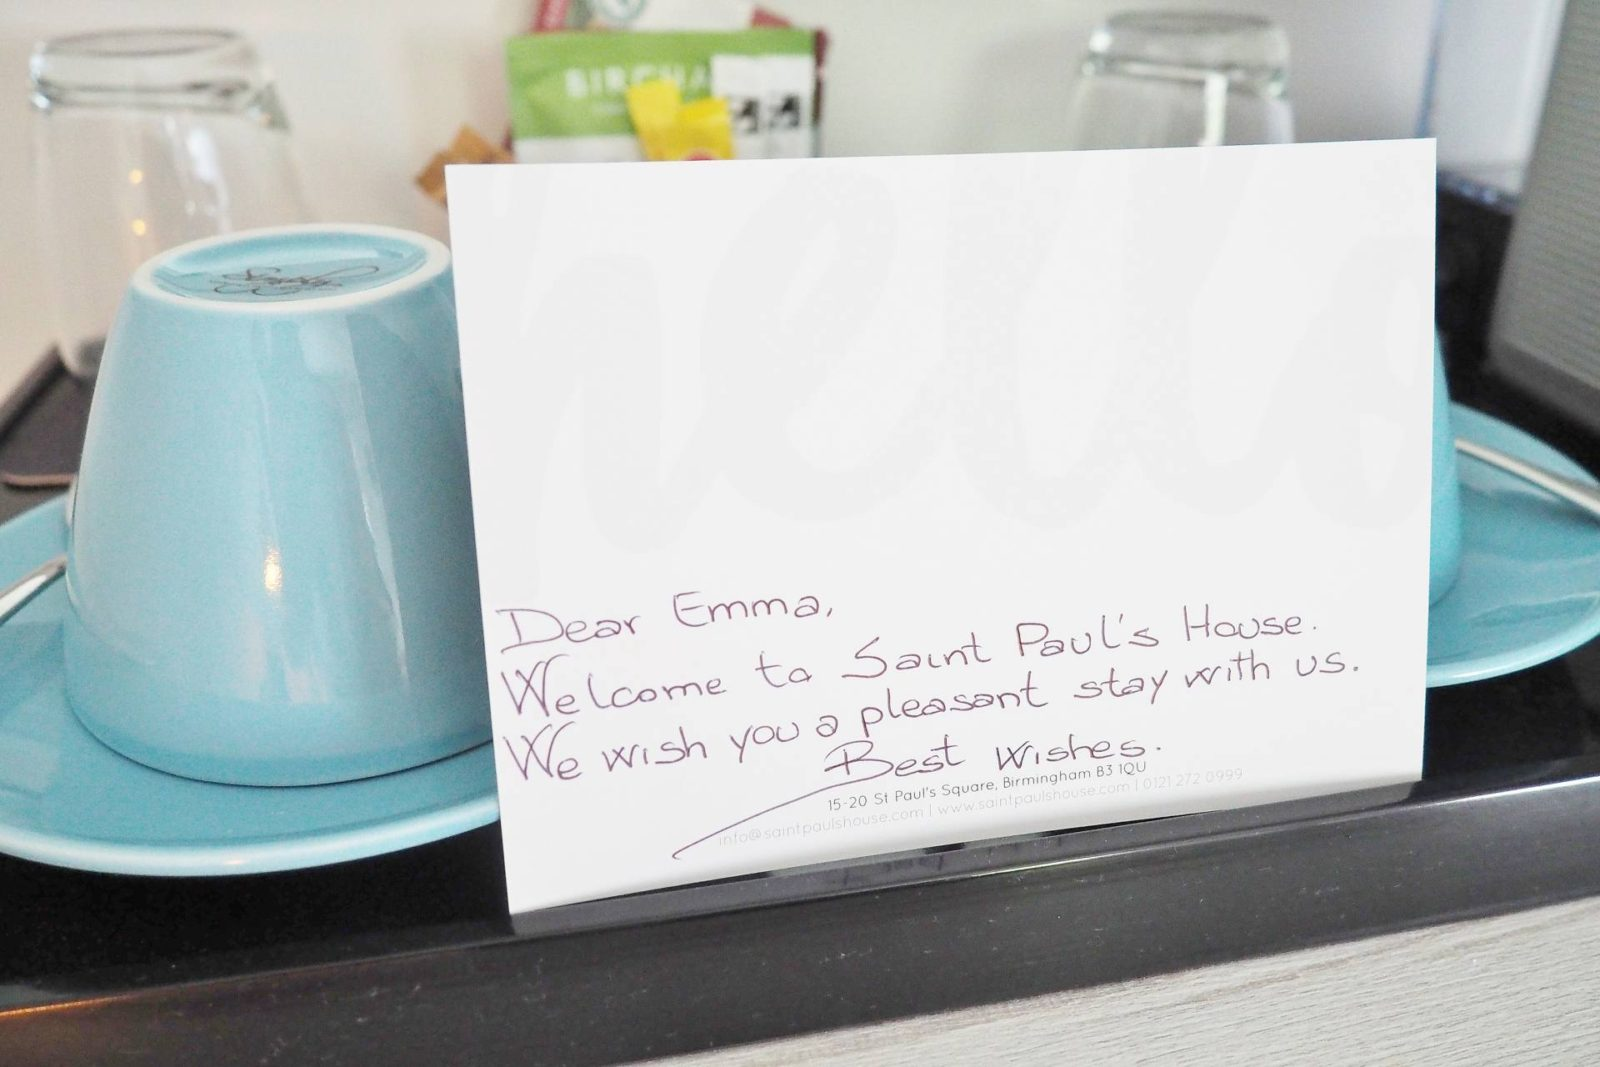 Emma Victoria Stokes Saint Pauls Boutique Hotel Welcome